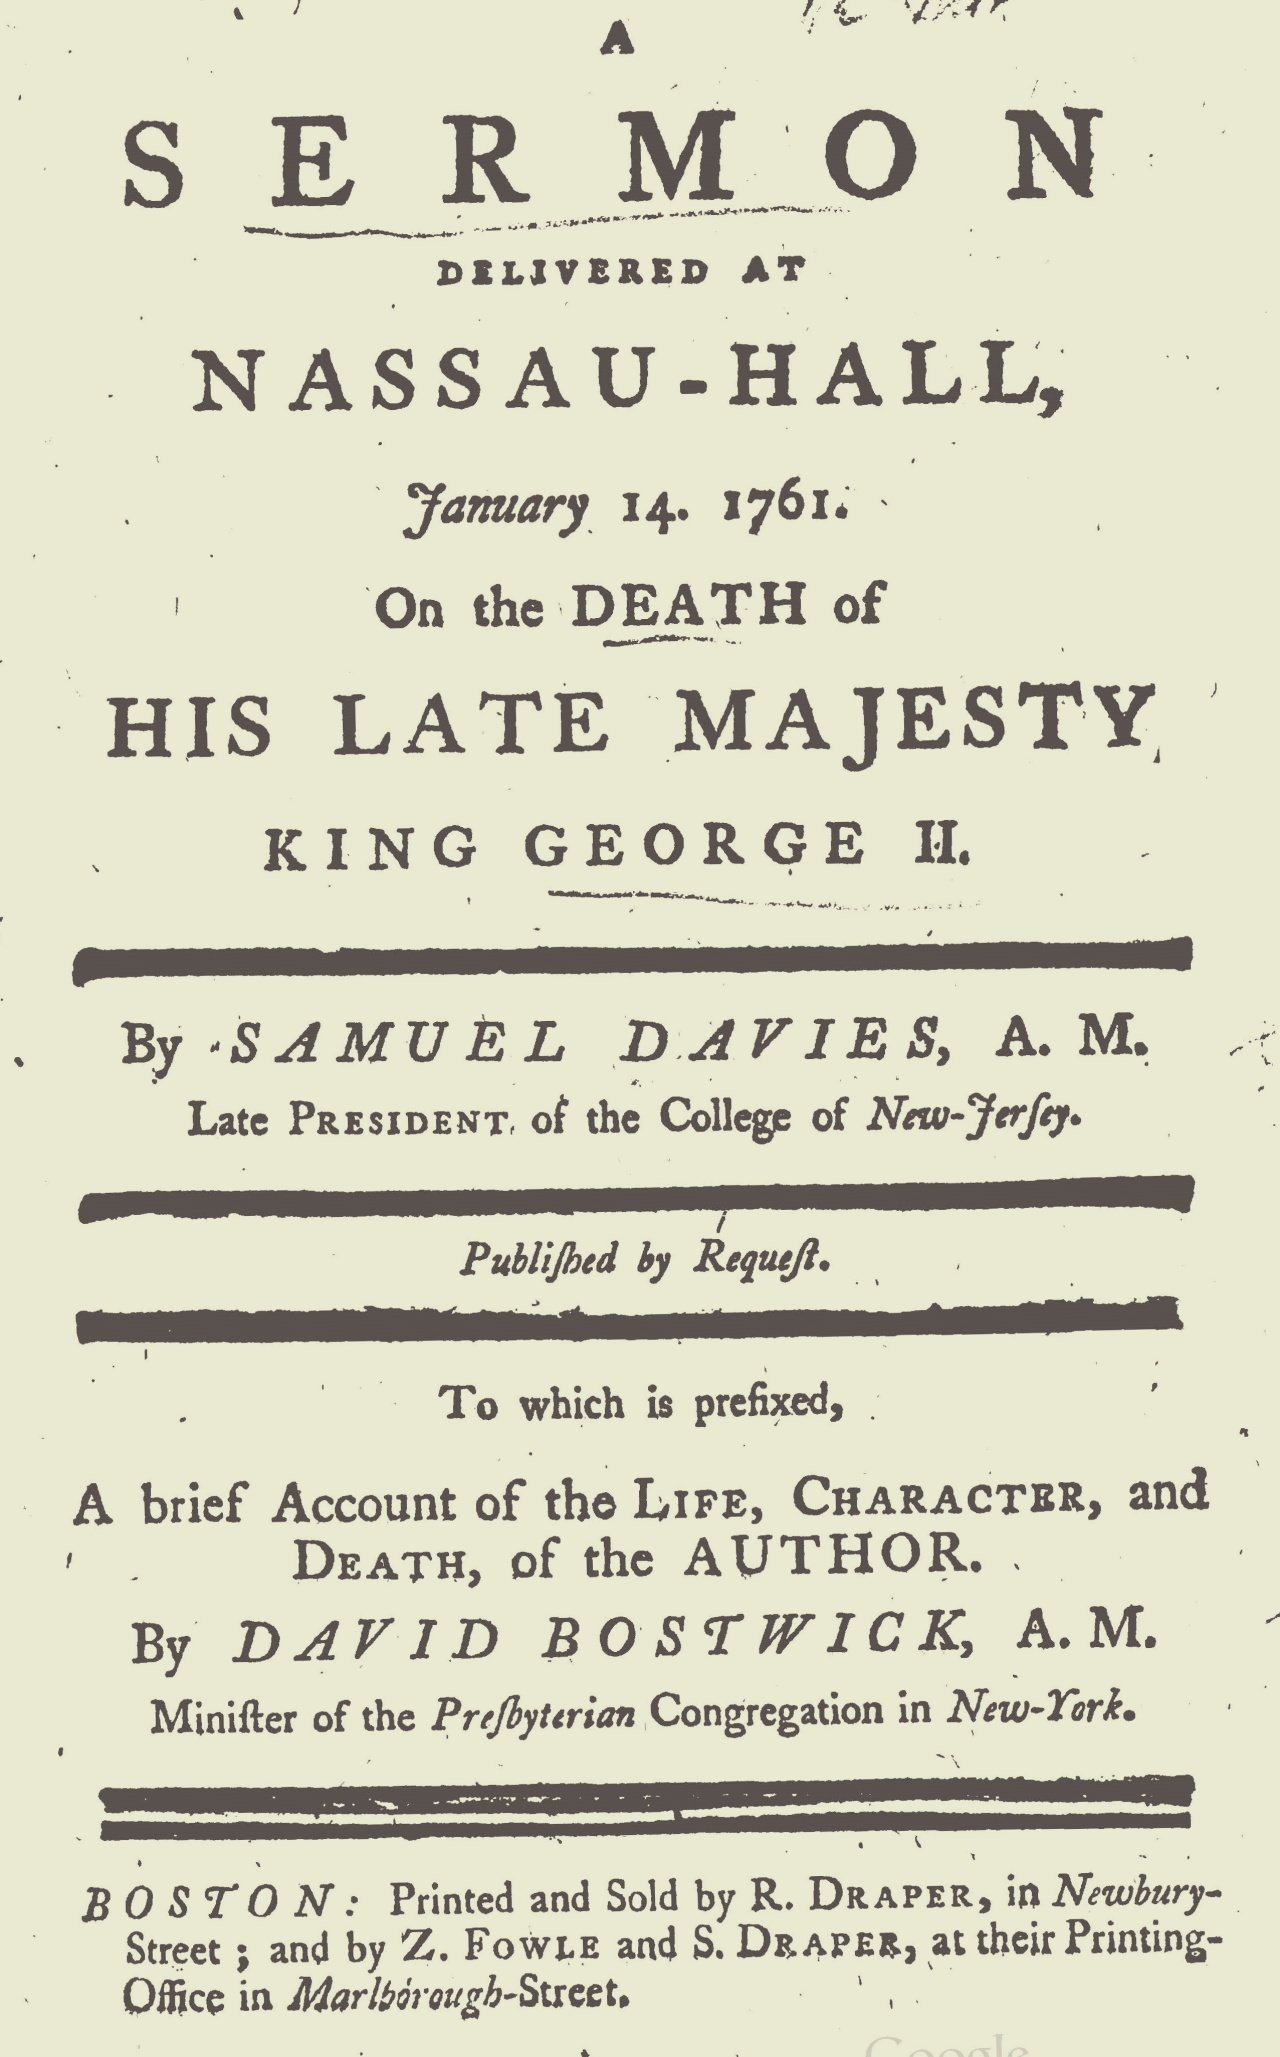 Davies, Samuel, A Sermon Delivered at Nassau-Hall, January 14, 1761 Title Page.jpg